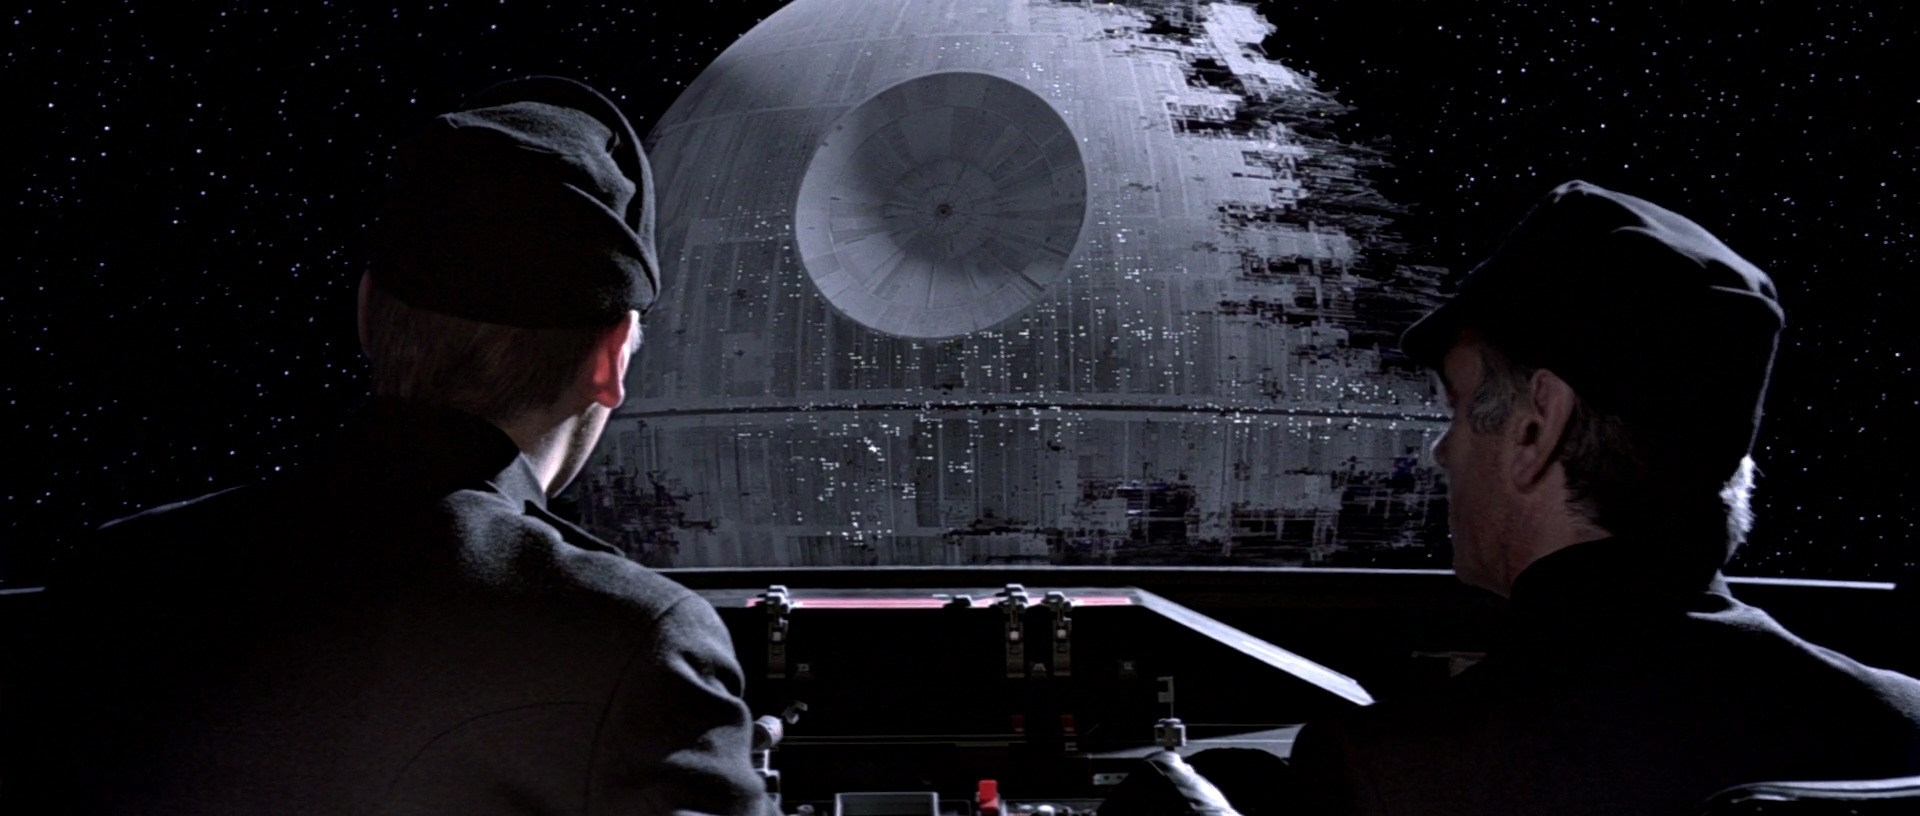 Star Wars Return of the Jedi Death Star II